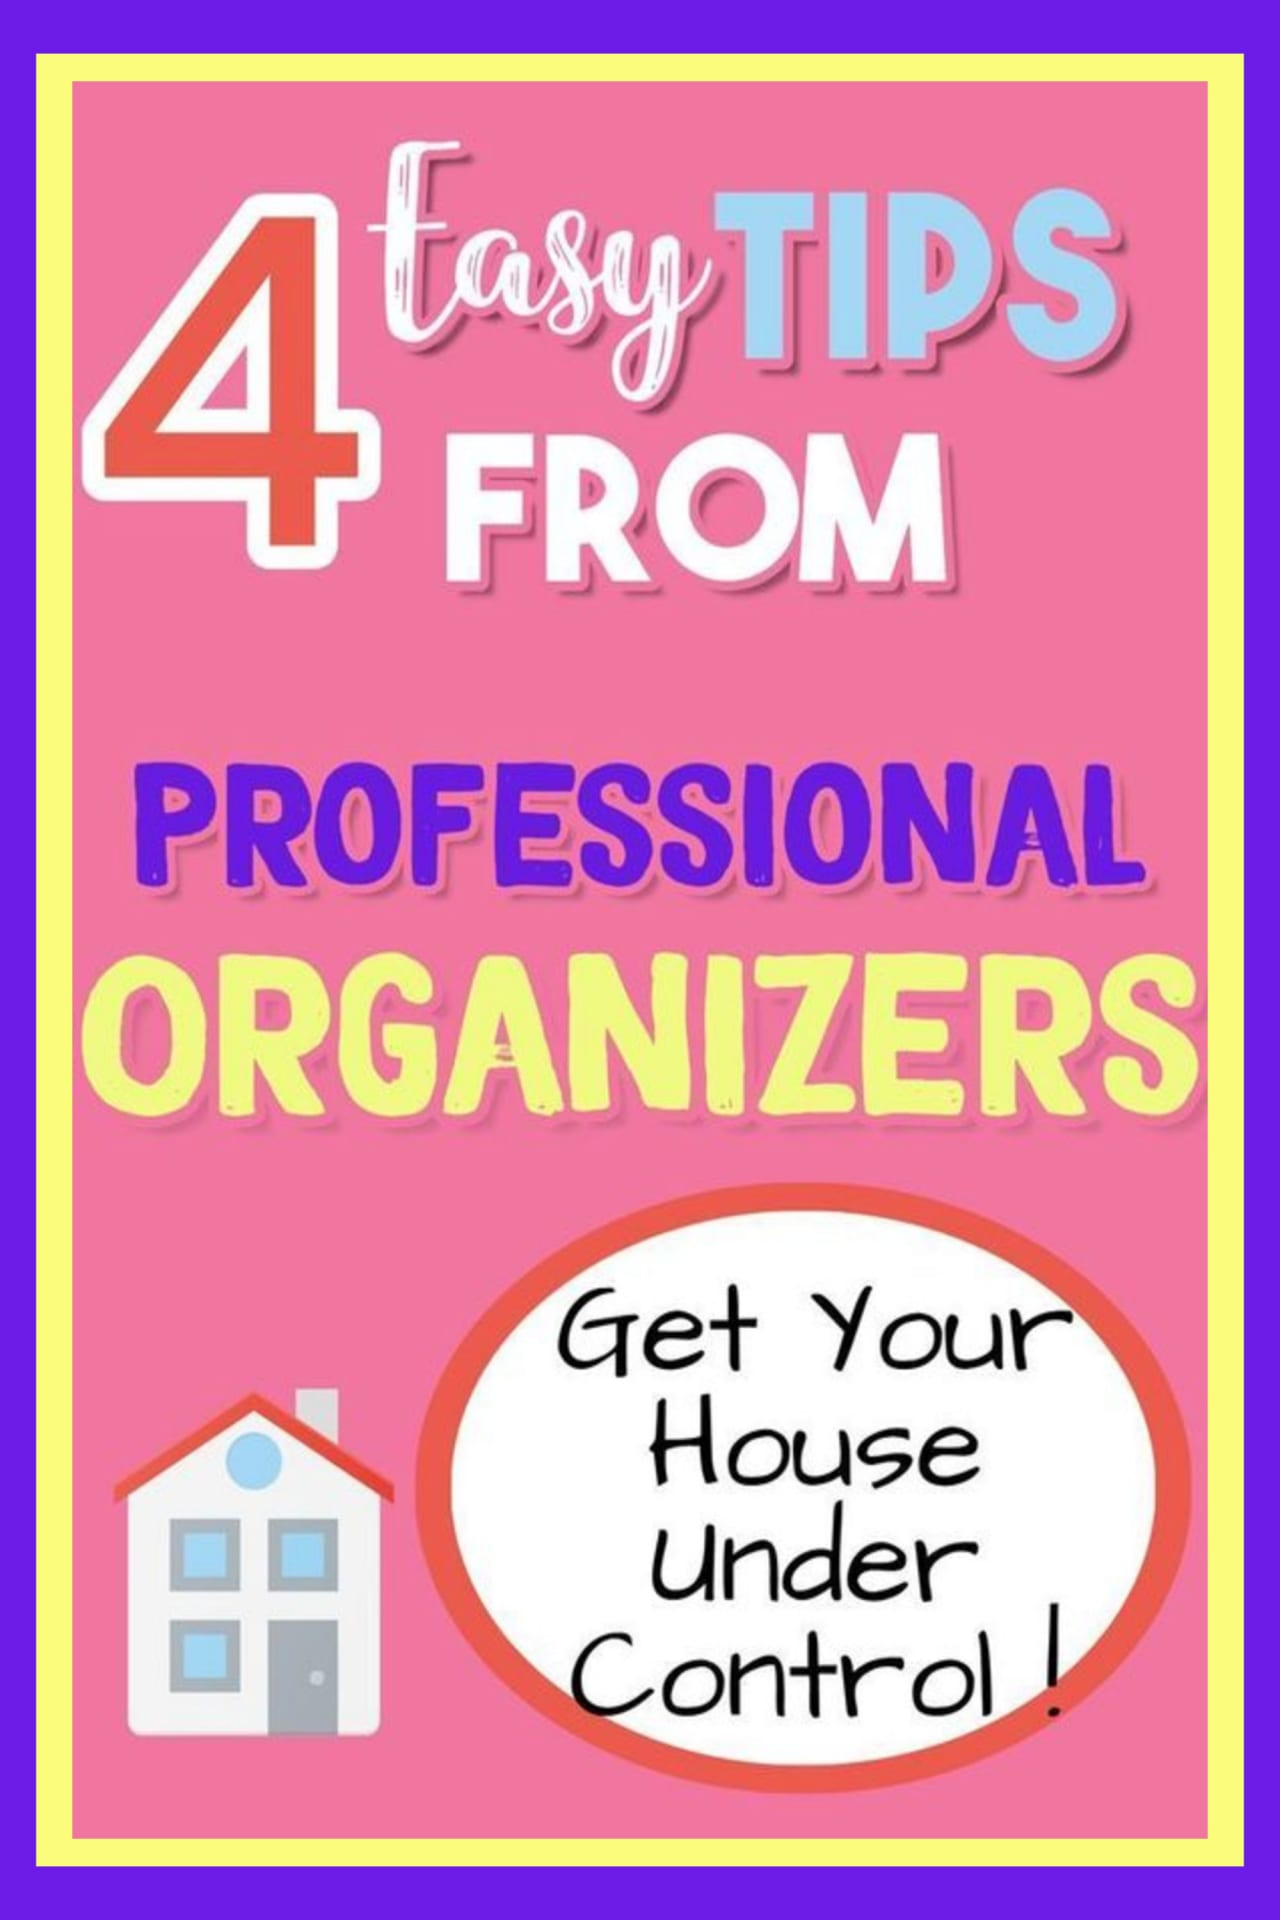 Decluttering Ideas-Feeling Overwhelmed? These clutter organization tips, organizing ideas, tips and tricks from Professional Organizer Tips and organization ideas will help you get organized at home with hoarding help, decluttering tips for pack rats and more decluttering ideas to declutter and organize your home and your life (even if overwhelmed by your clutter and messy house)